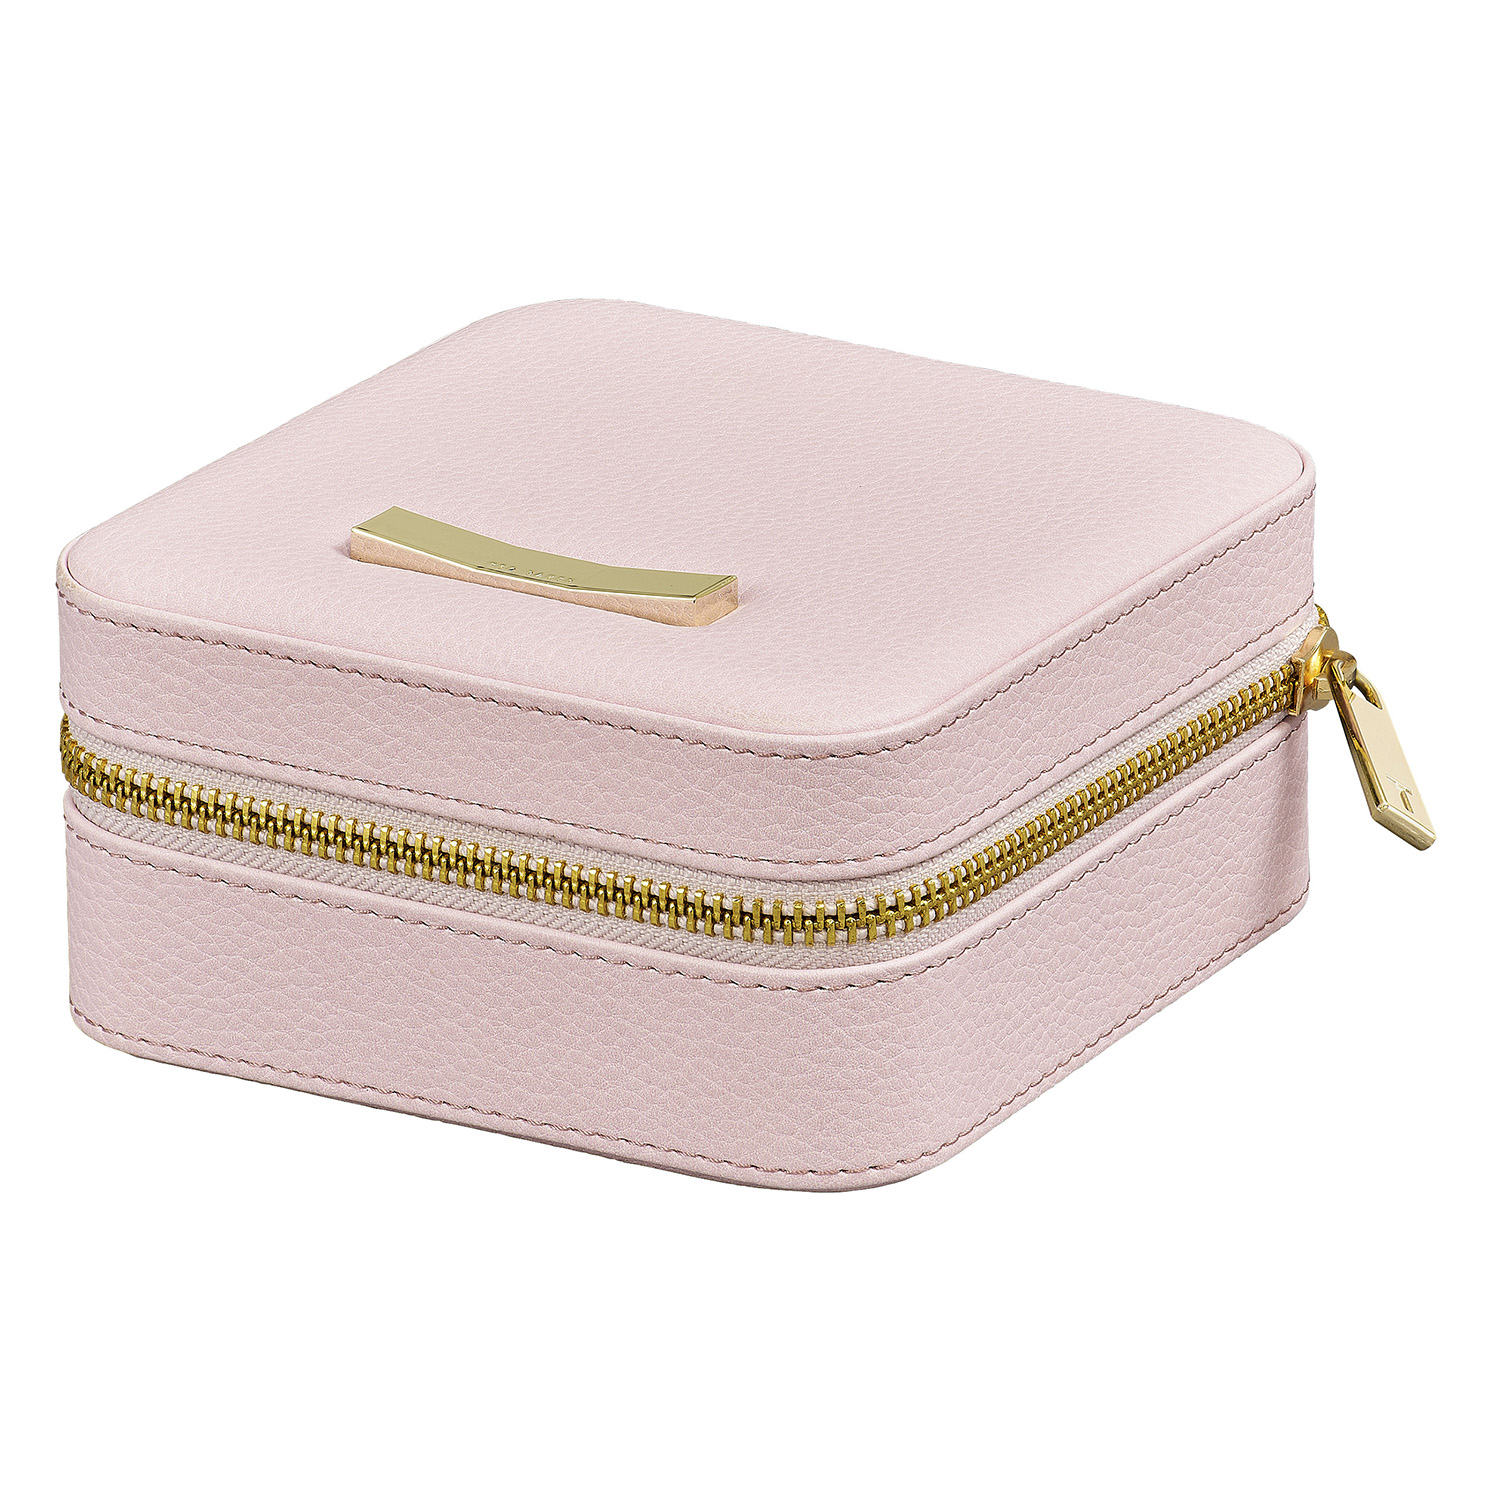 Ted Baker – Pink Zipped Jewellery Storage Case with Gold Ted Baker Branded Bow